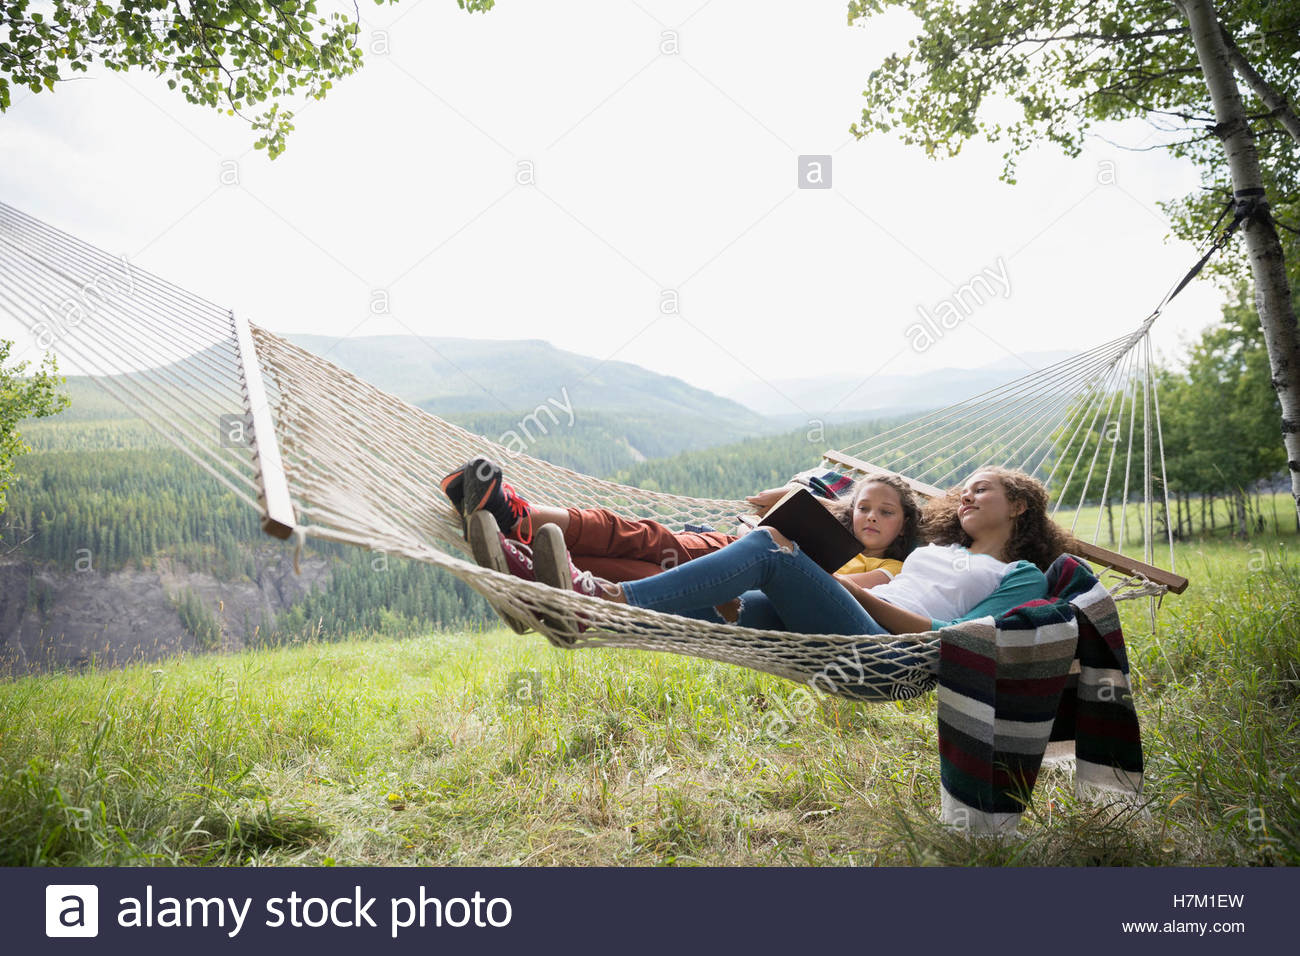 Sisters laying in rural hammock reading book - Stock Image